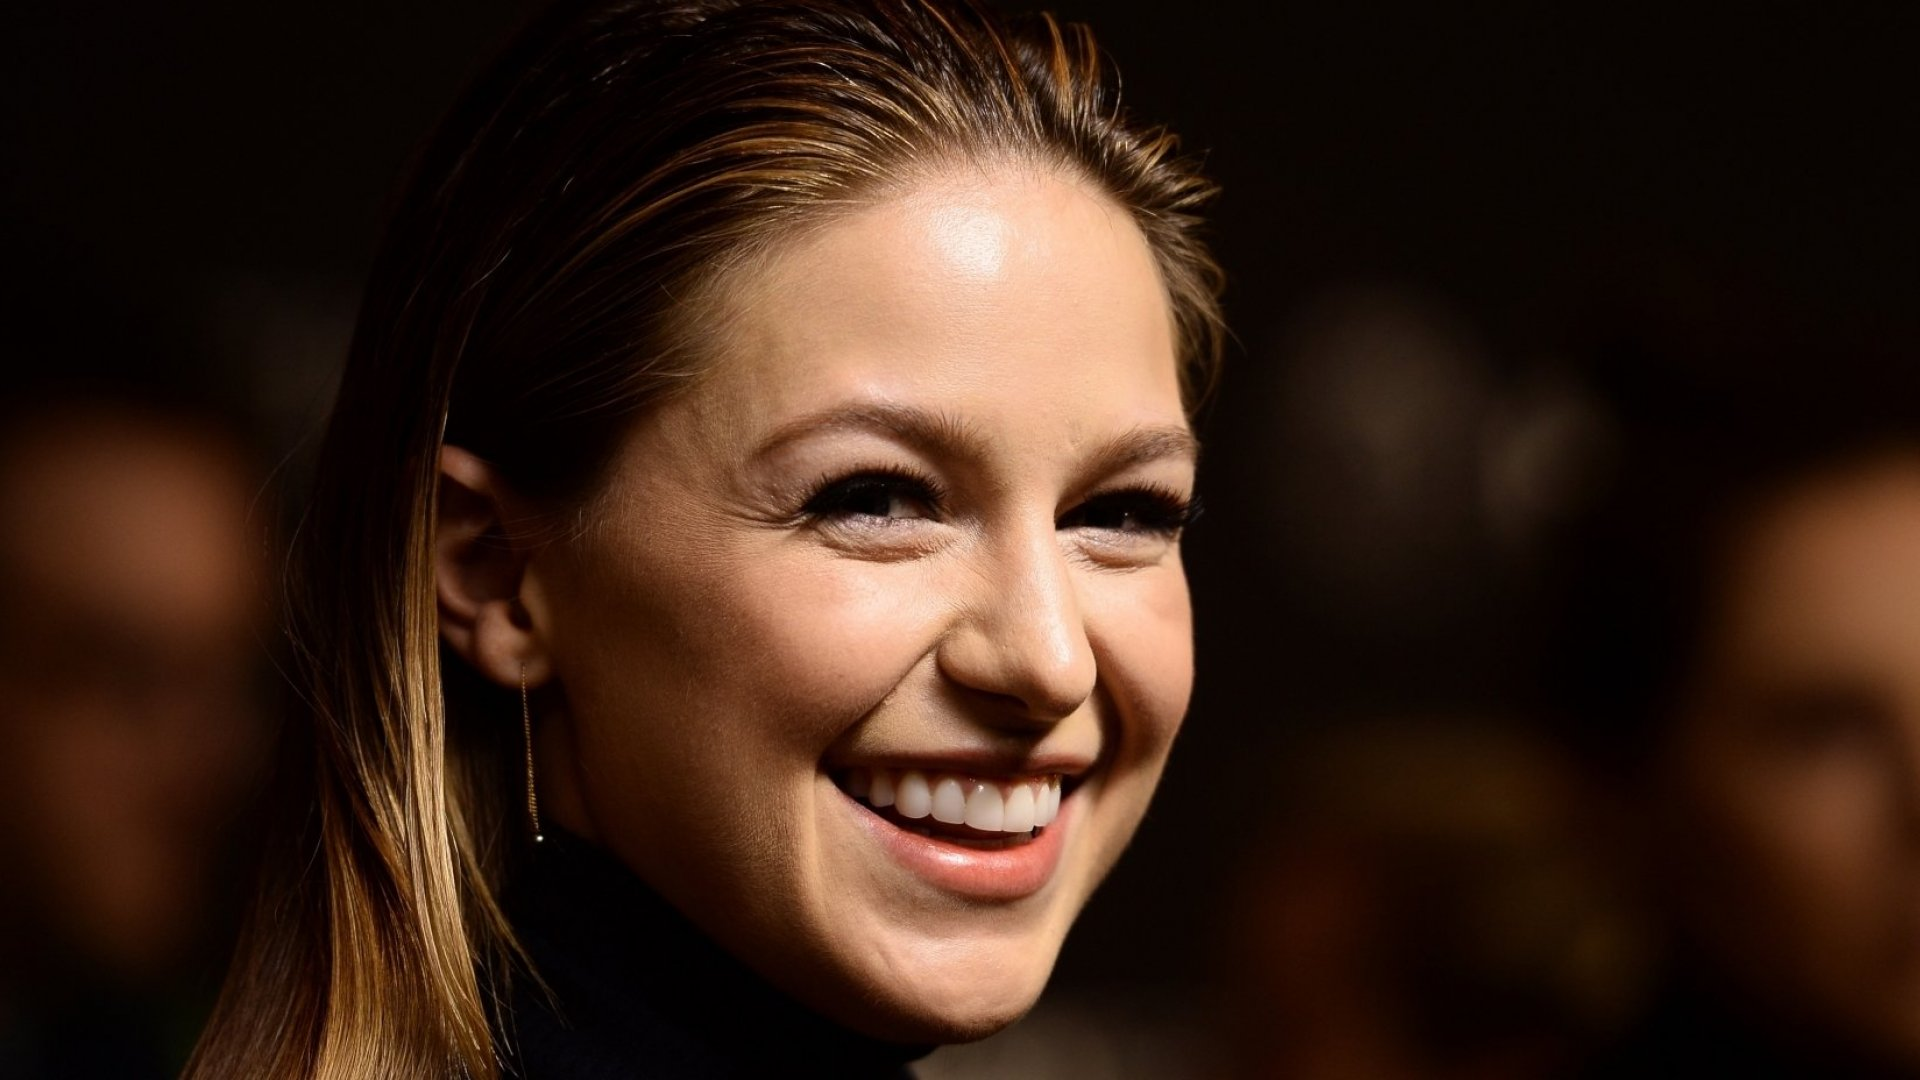 Supergirl Star Melissa Benoist Describes Her Past as a Domestic Abuse Victim. I Was One Too